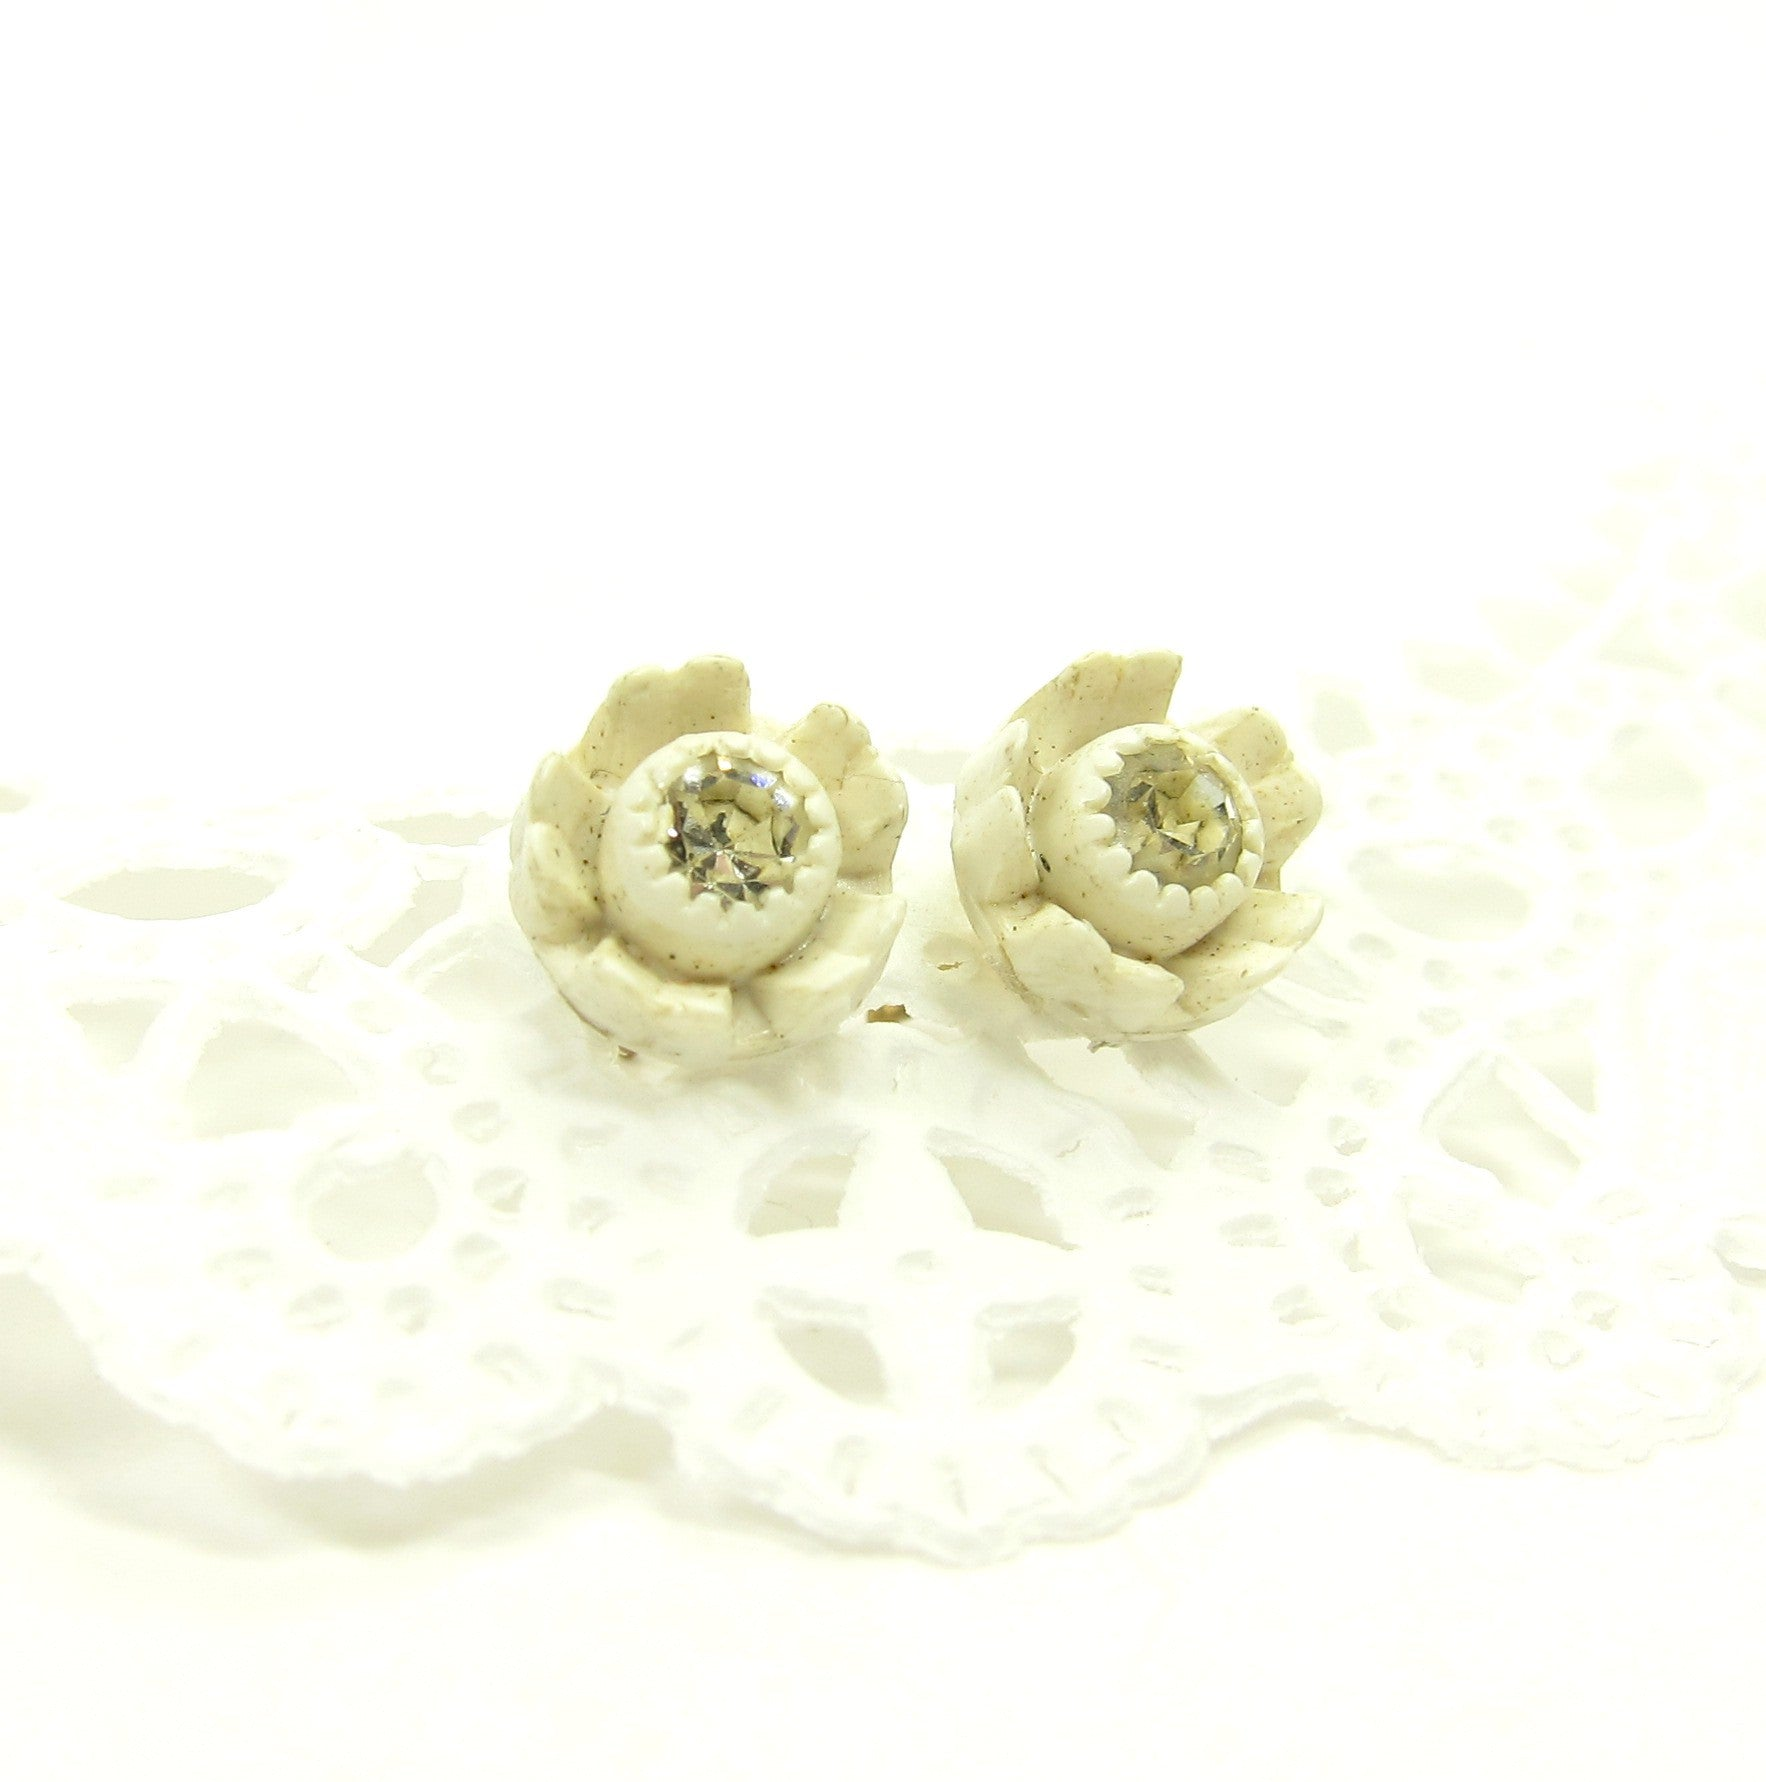 White rhinestone rose post earrings